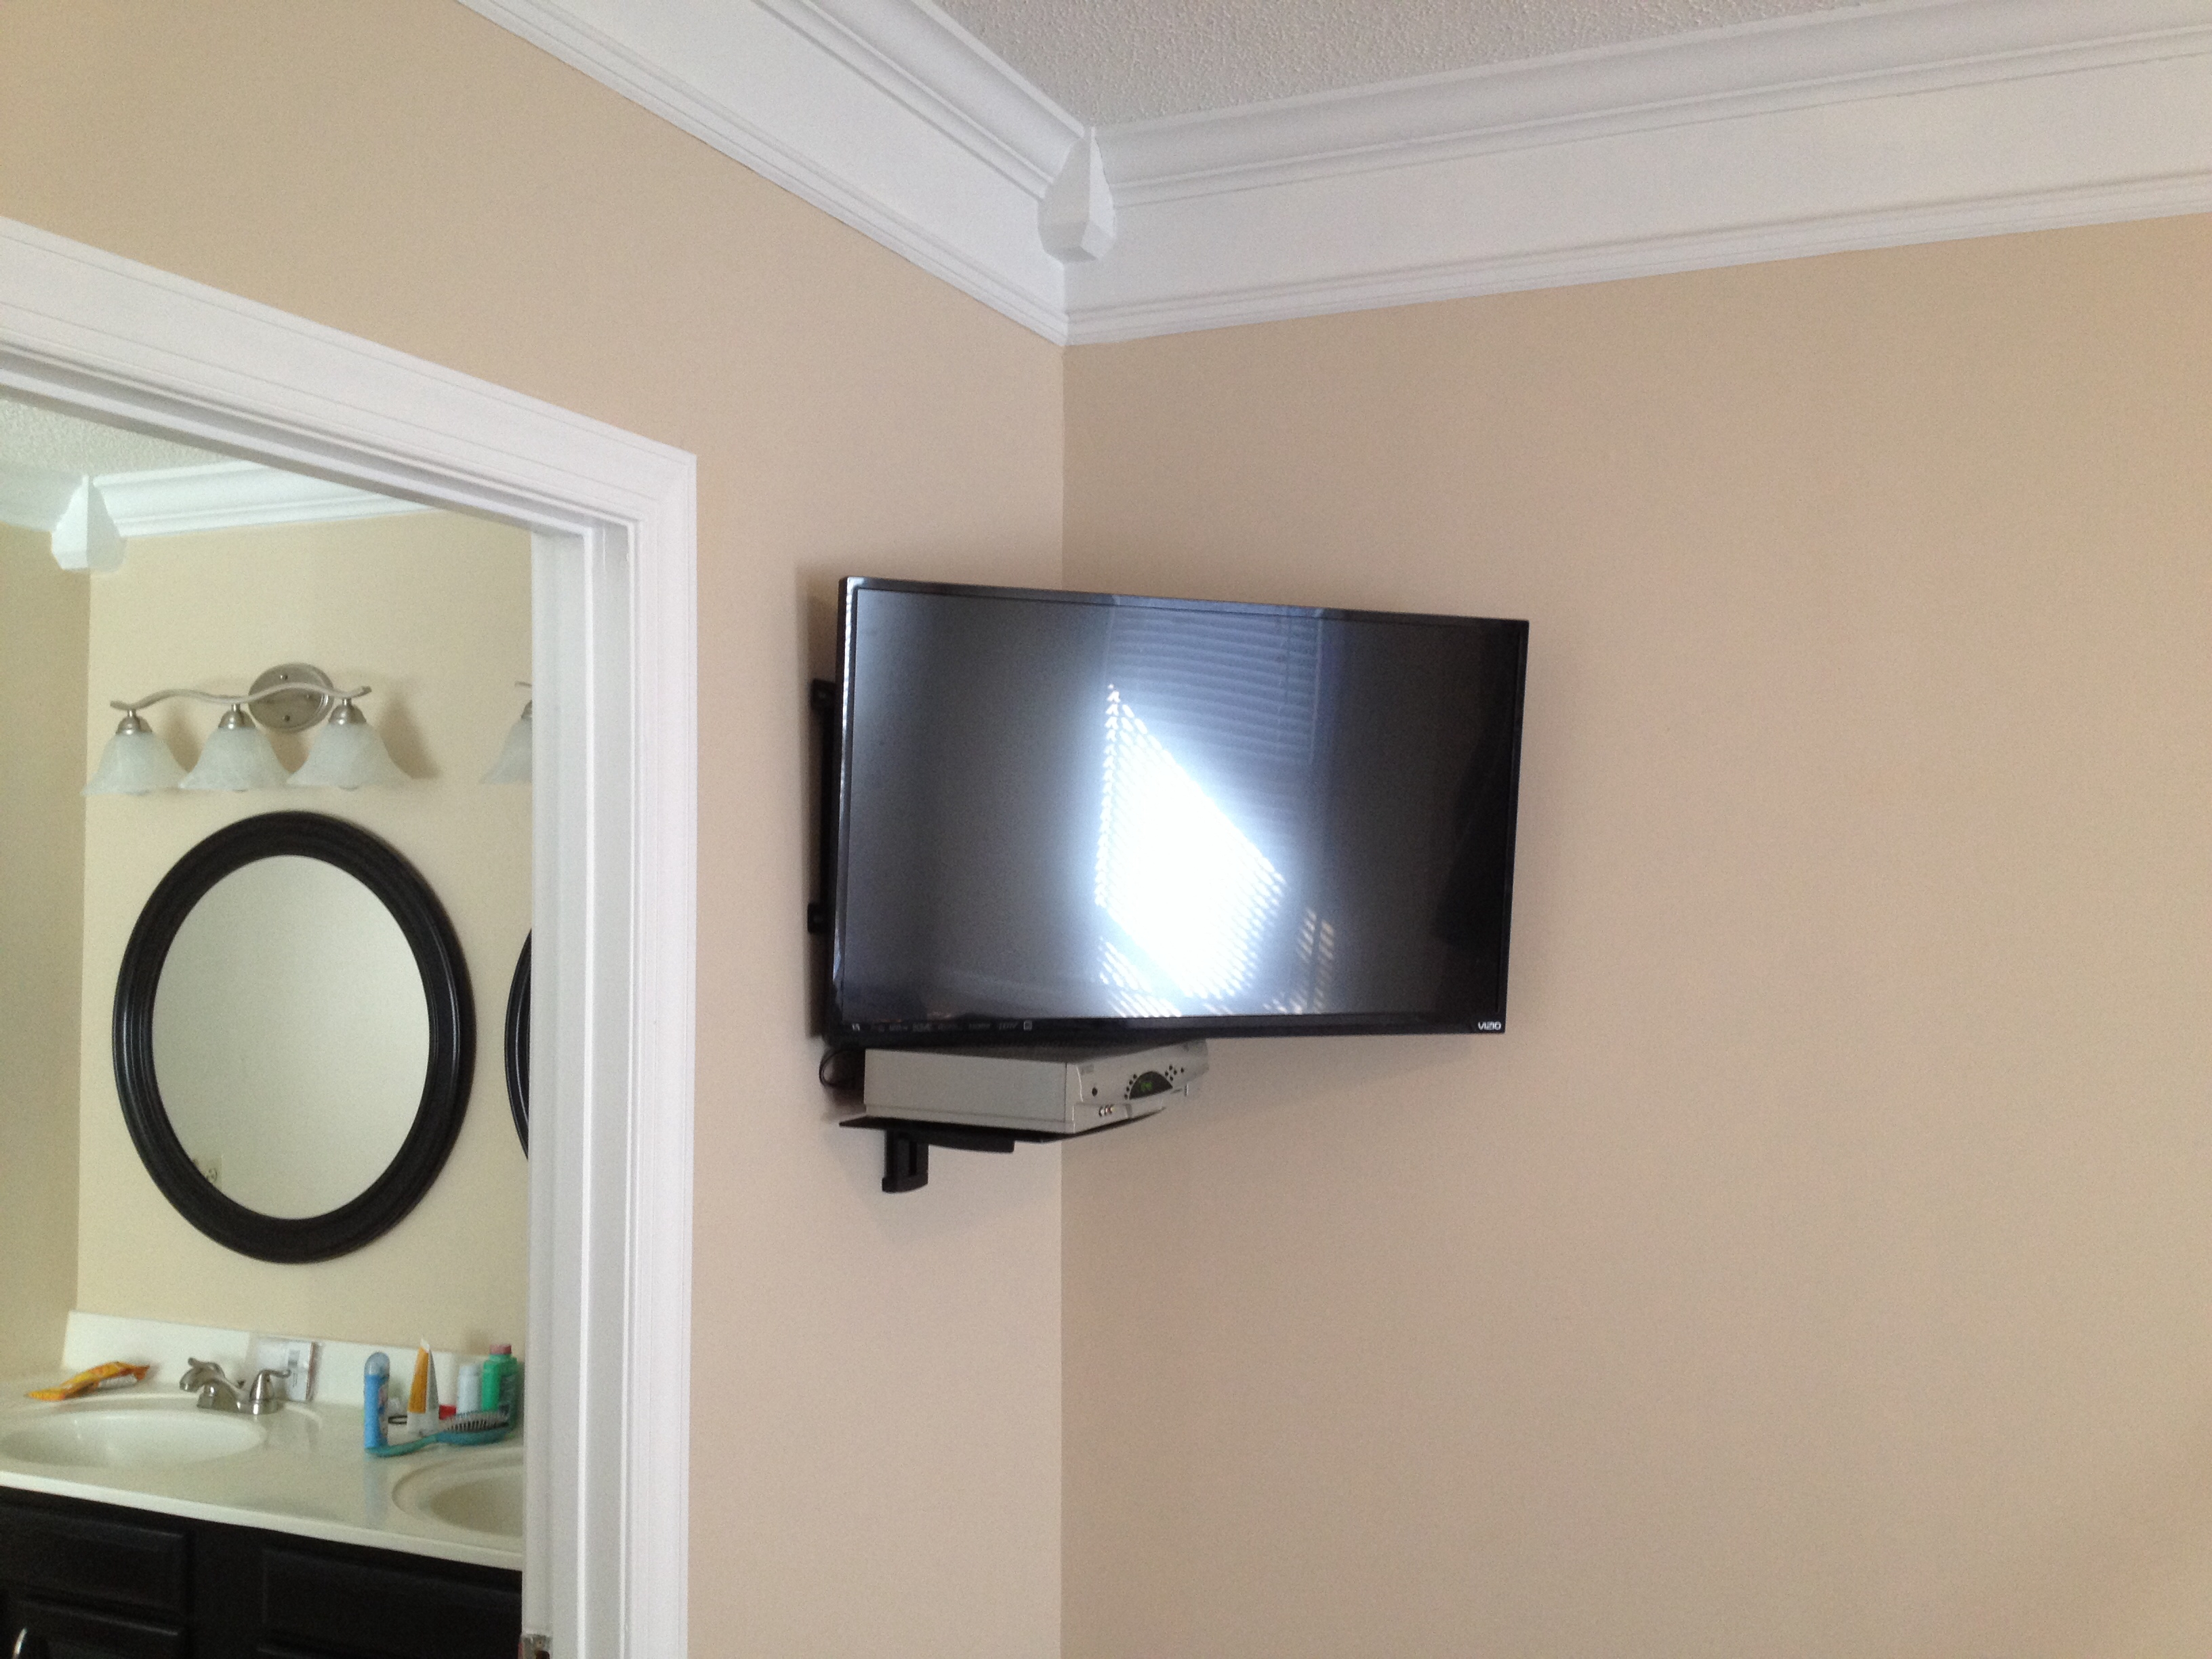 Led Tv Wall Mount Installation With Floating Glass Shelf For Cable Within Corner Shelf For Dvd Player On Wall (#11 of 15)